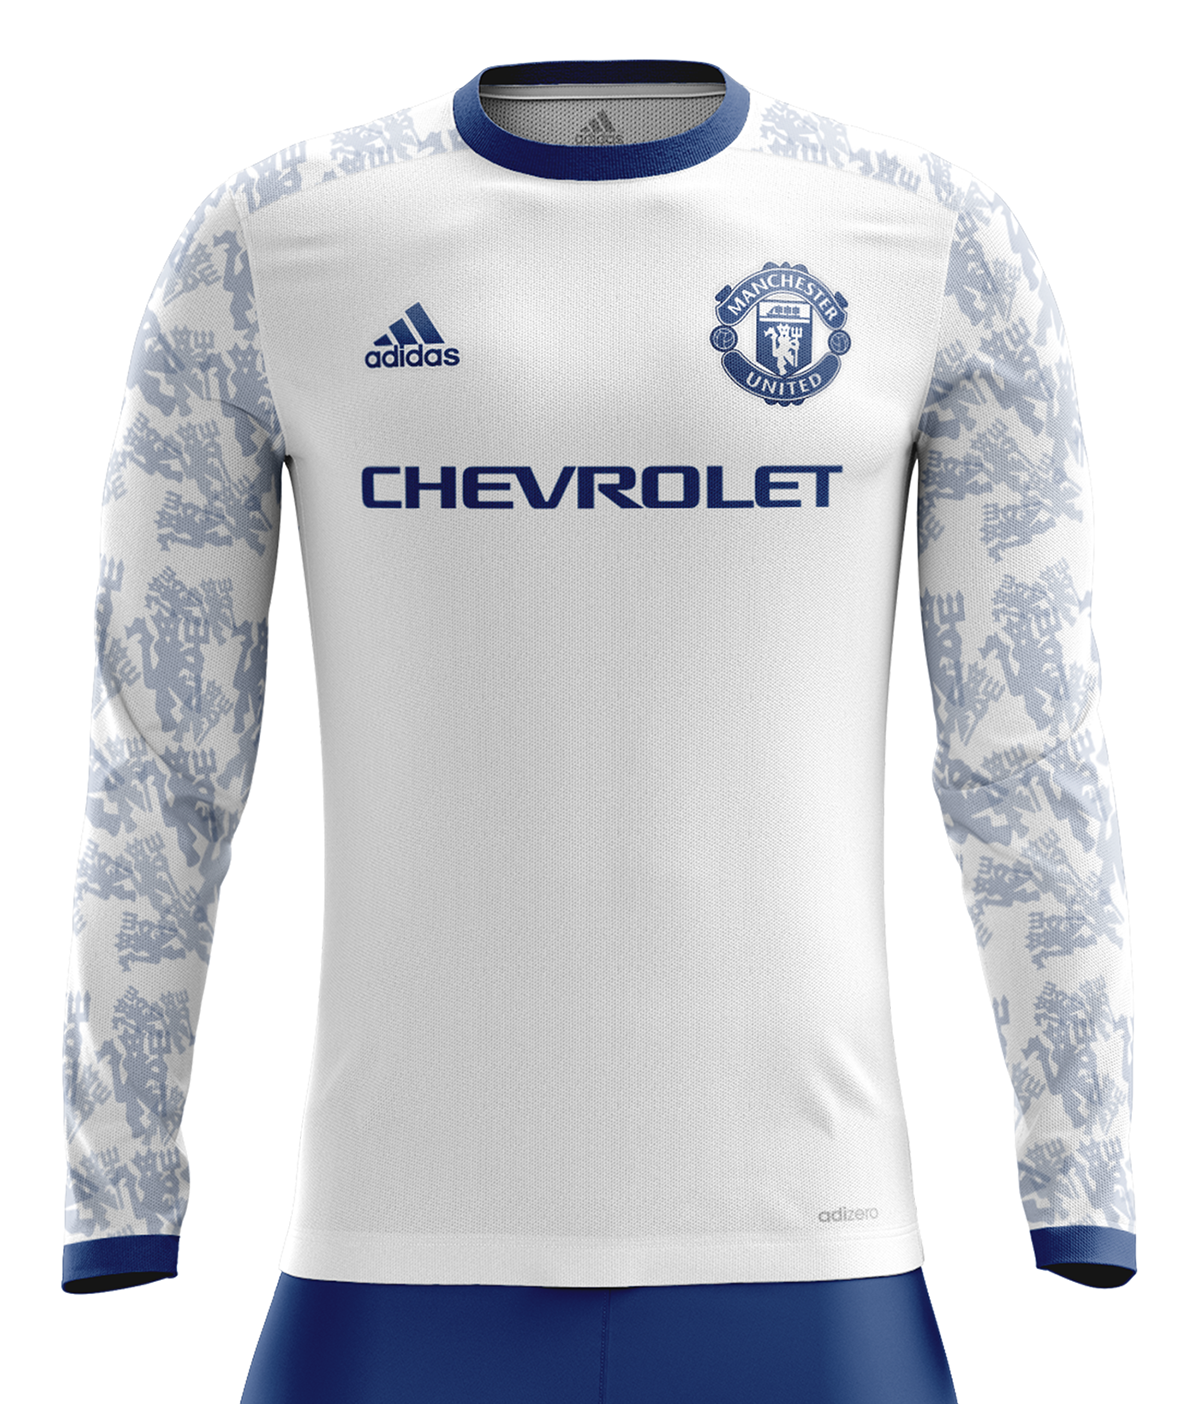 Manchester United X Adidas On Behance Manchester United Sports Jersey Design Soccer Shirts